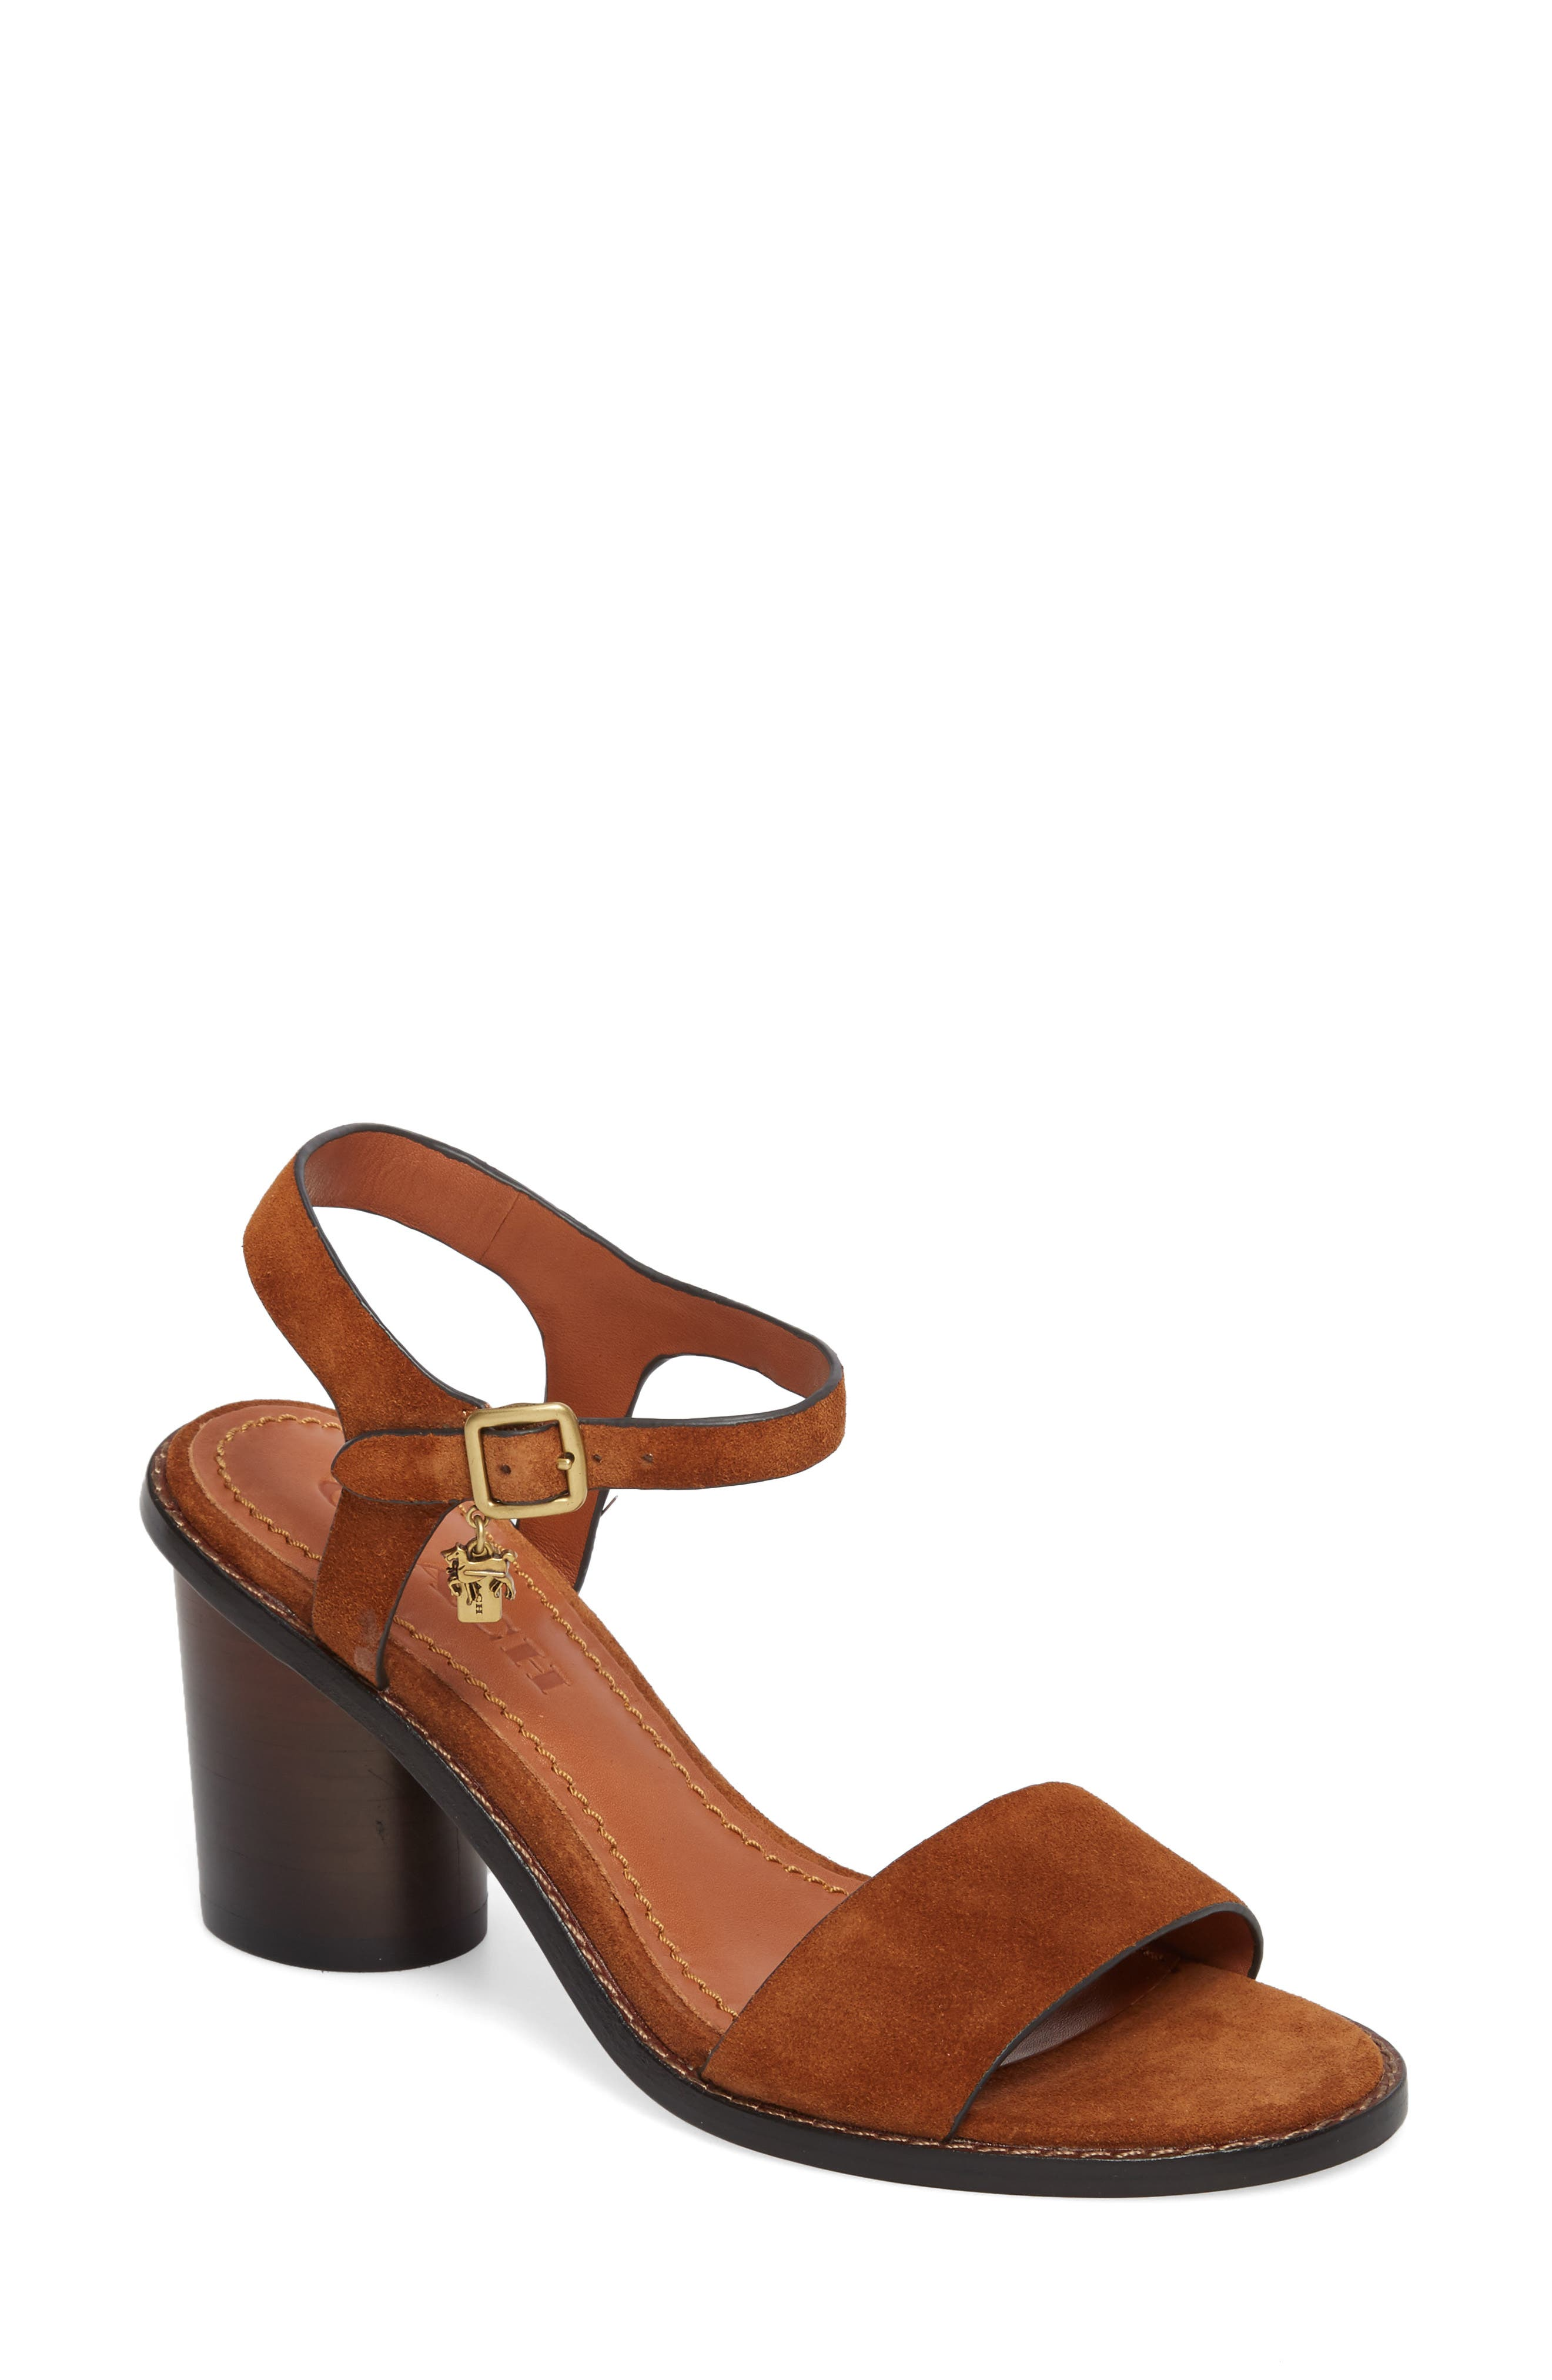 COACH Column Heel Sandal (Women)